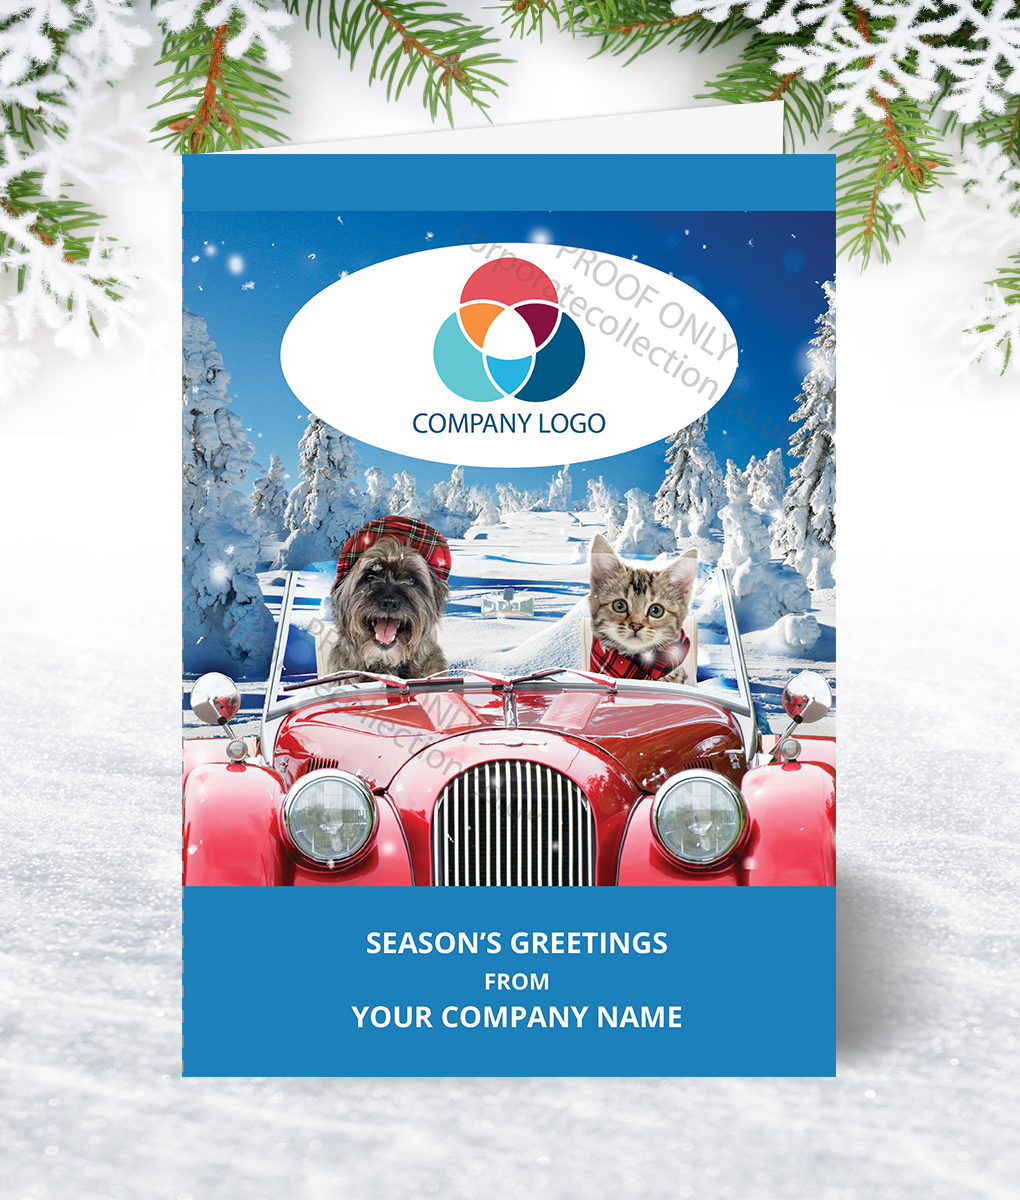 Coming Home For Christmas 2019.Driving Home Christmas Card Corporate Collection